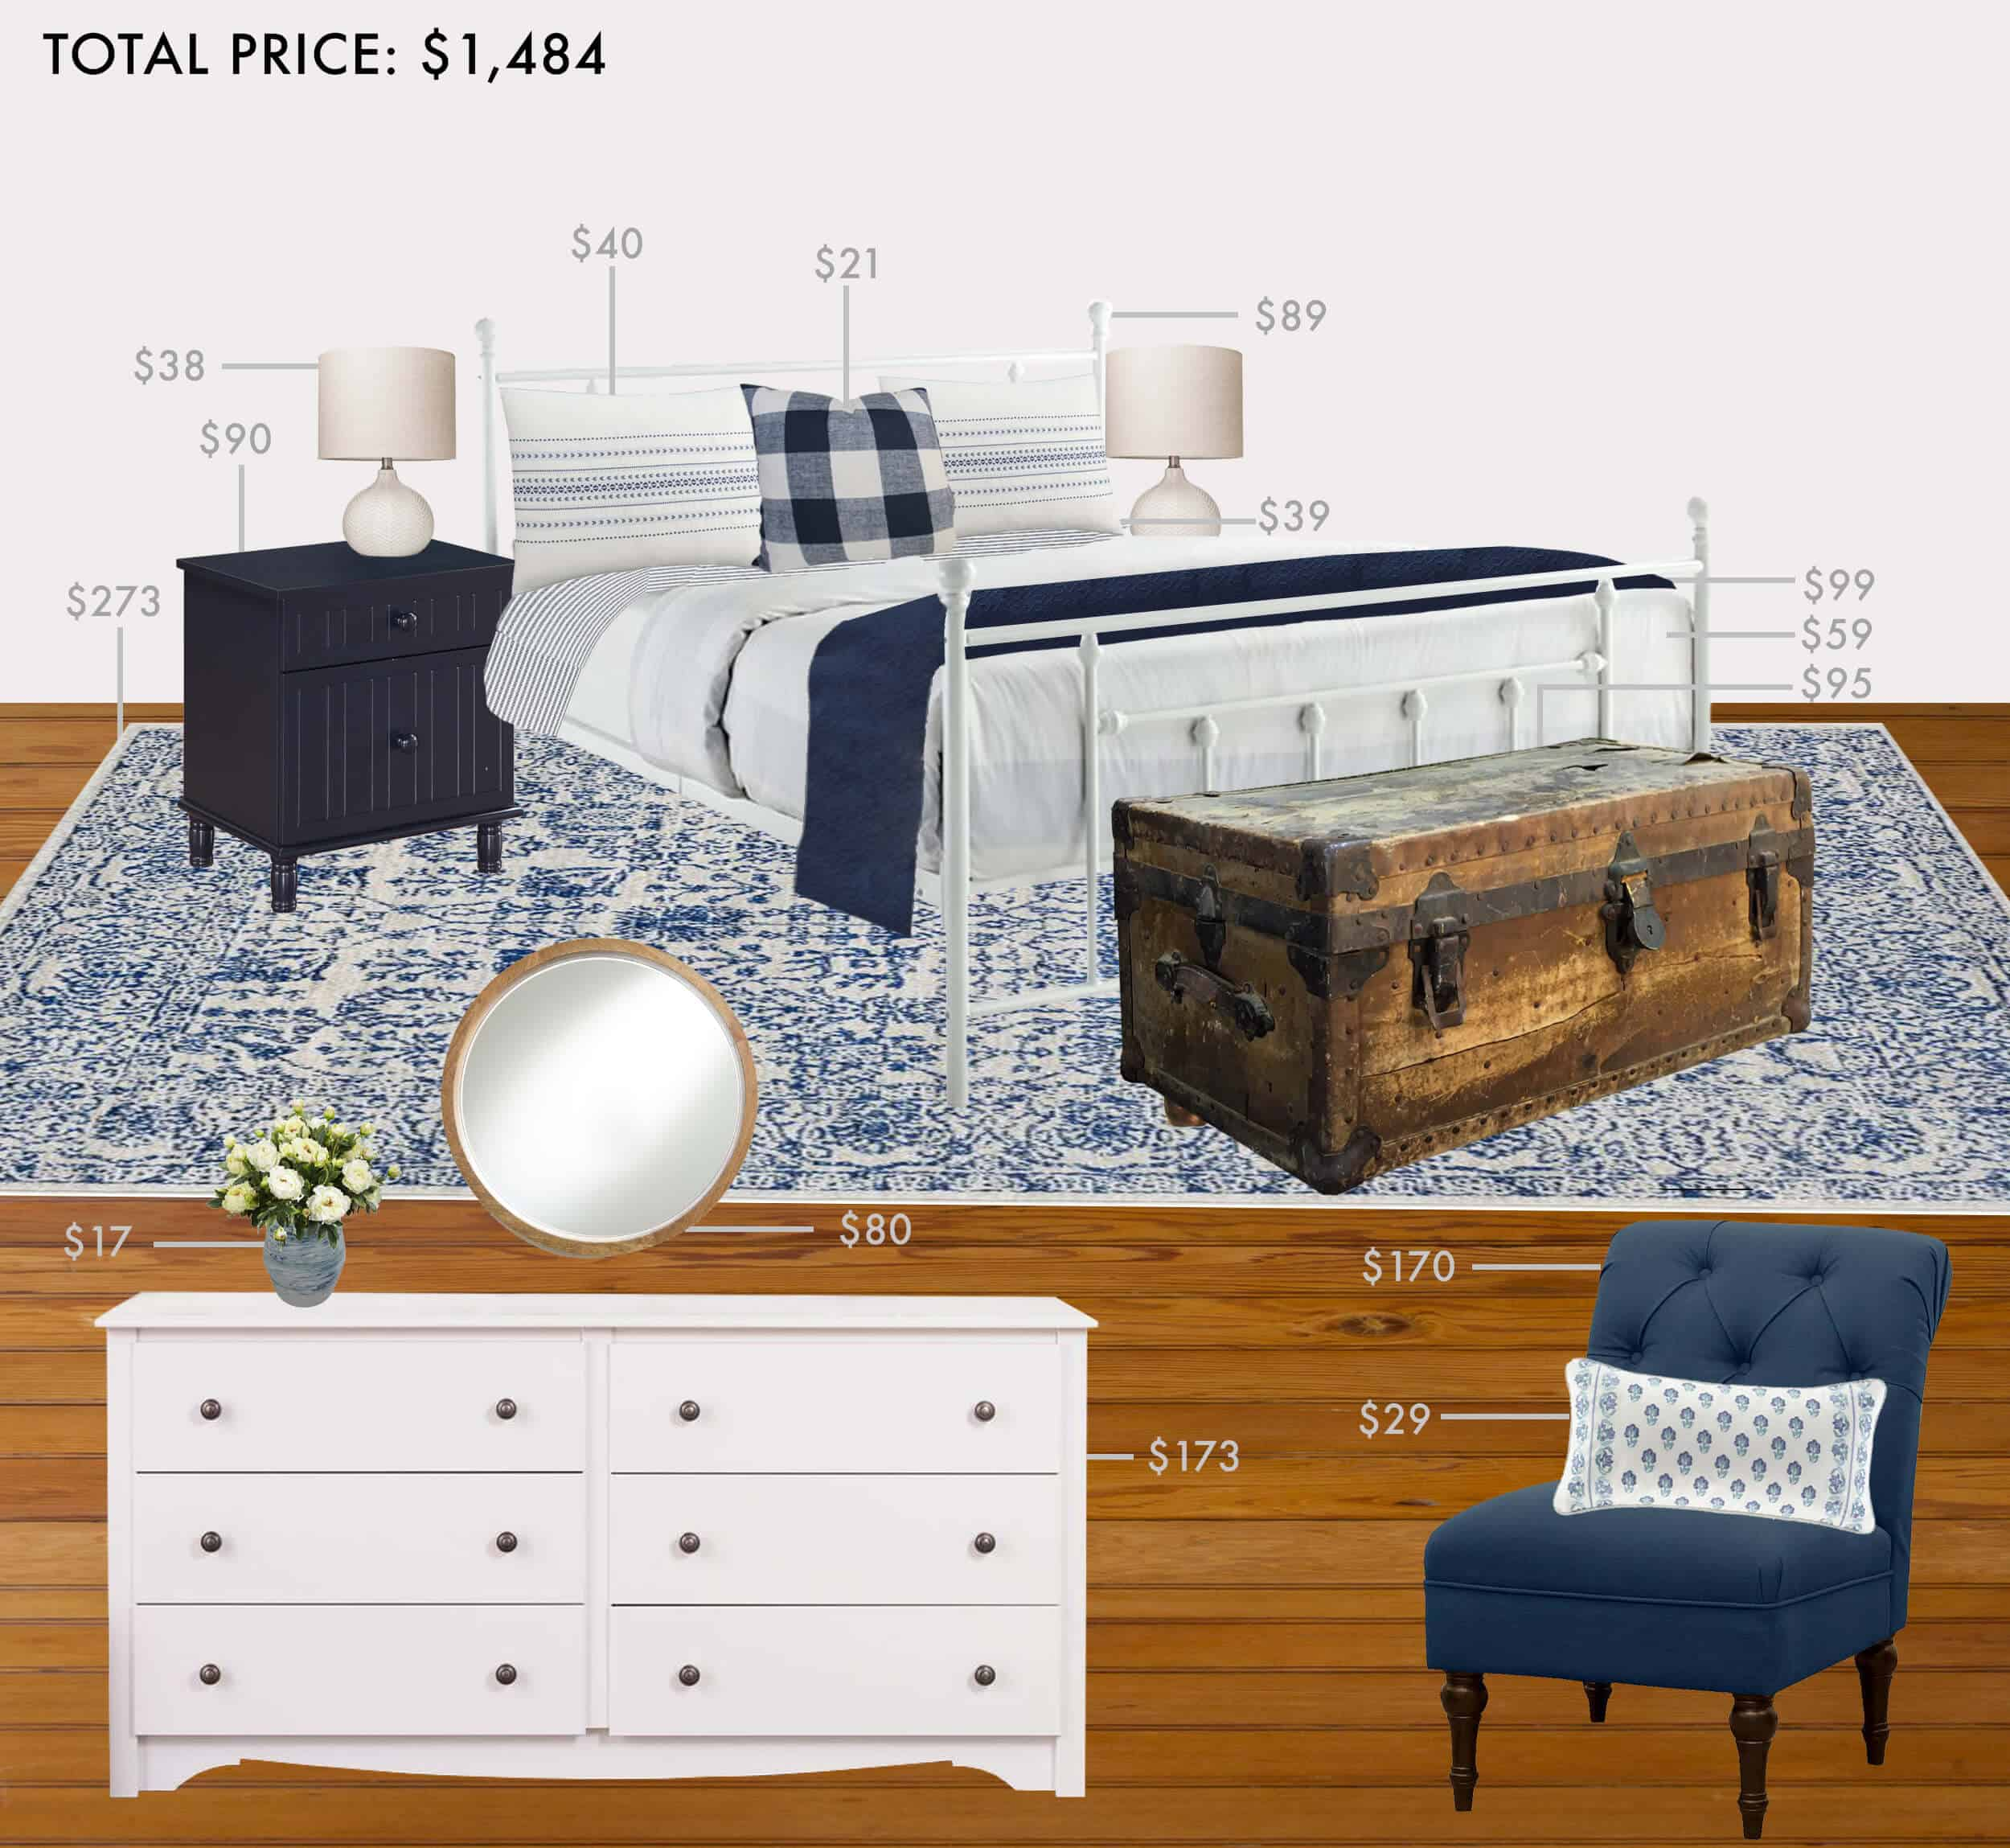 english_cottage_budget_bedroom_under15k